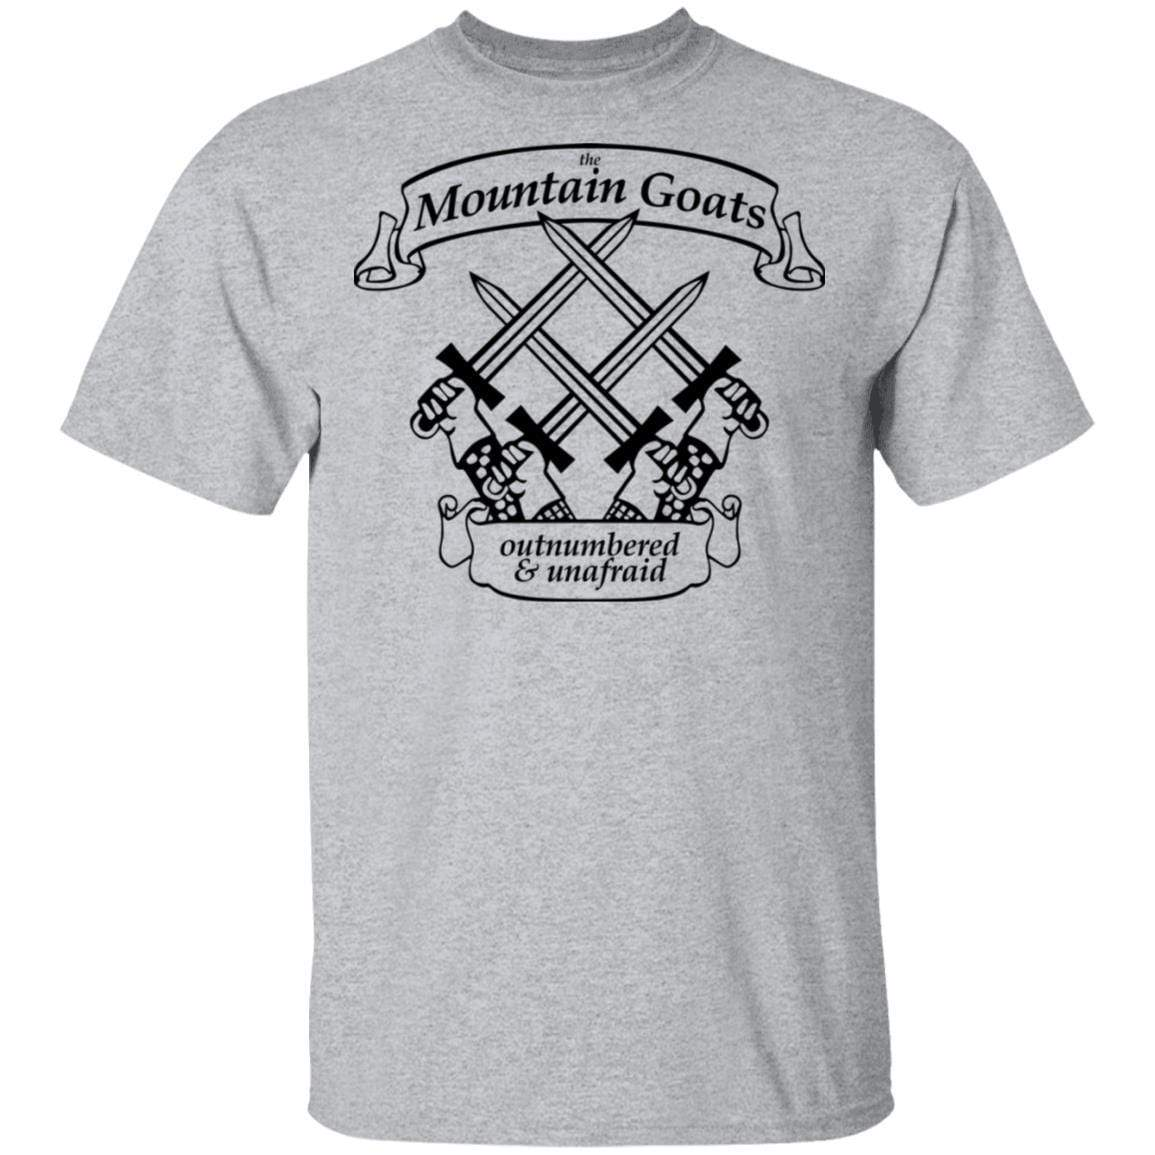 The Mountain Goats Outnumbered And Unafraid T-Shirts, Hoodies 1049-9972-92948169-48200 - Tee Ript